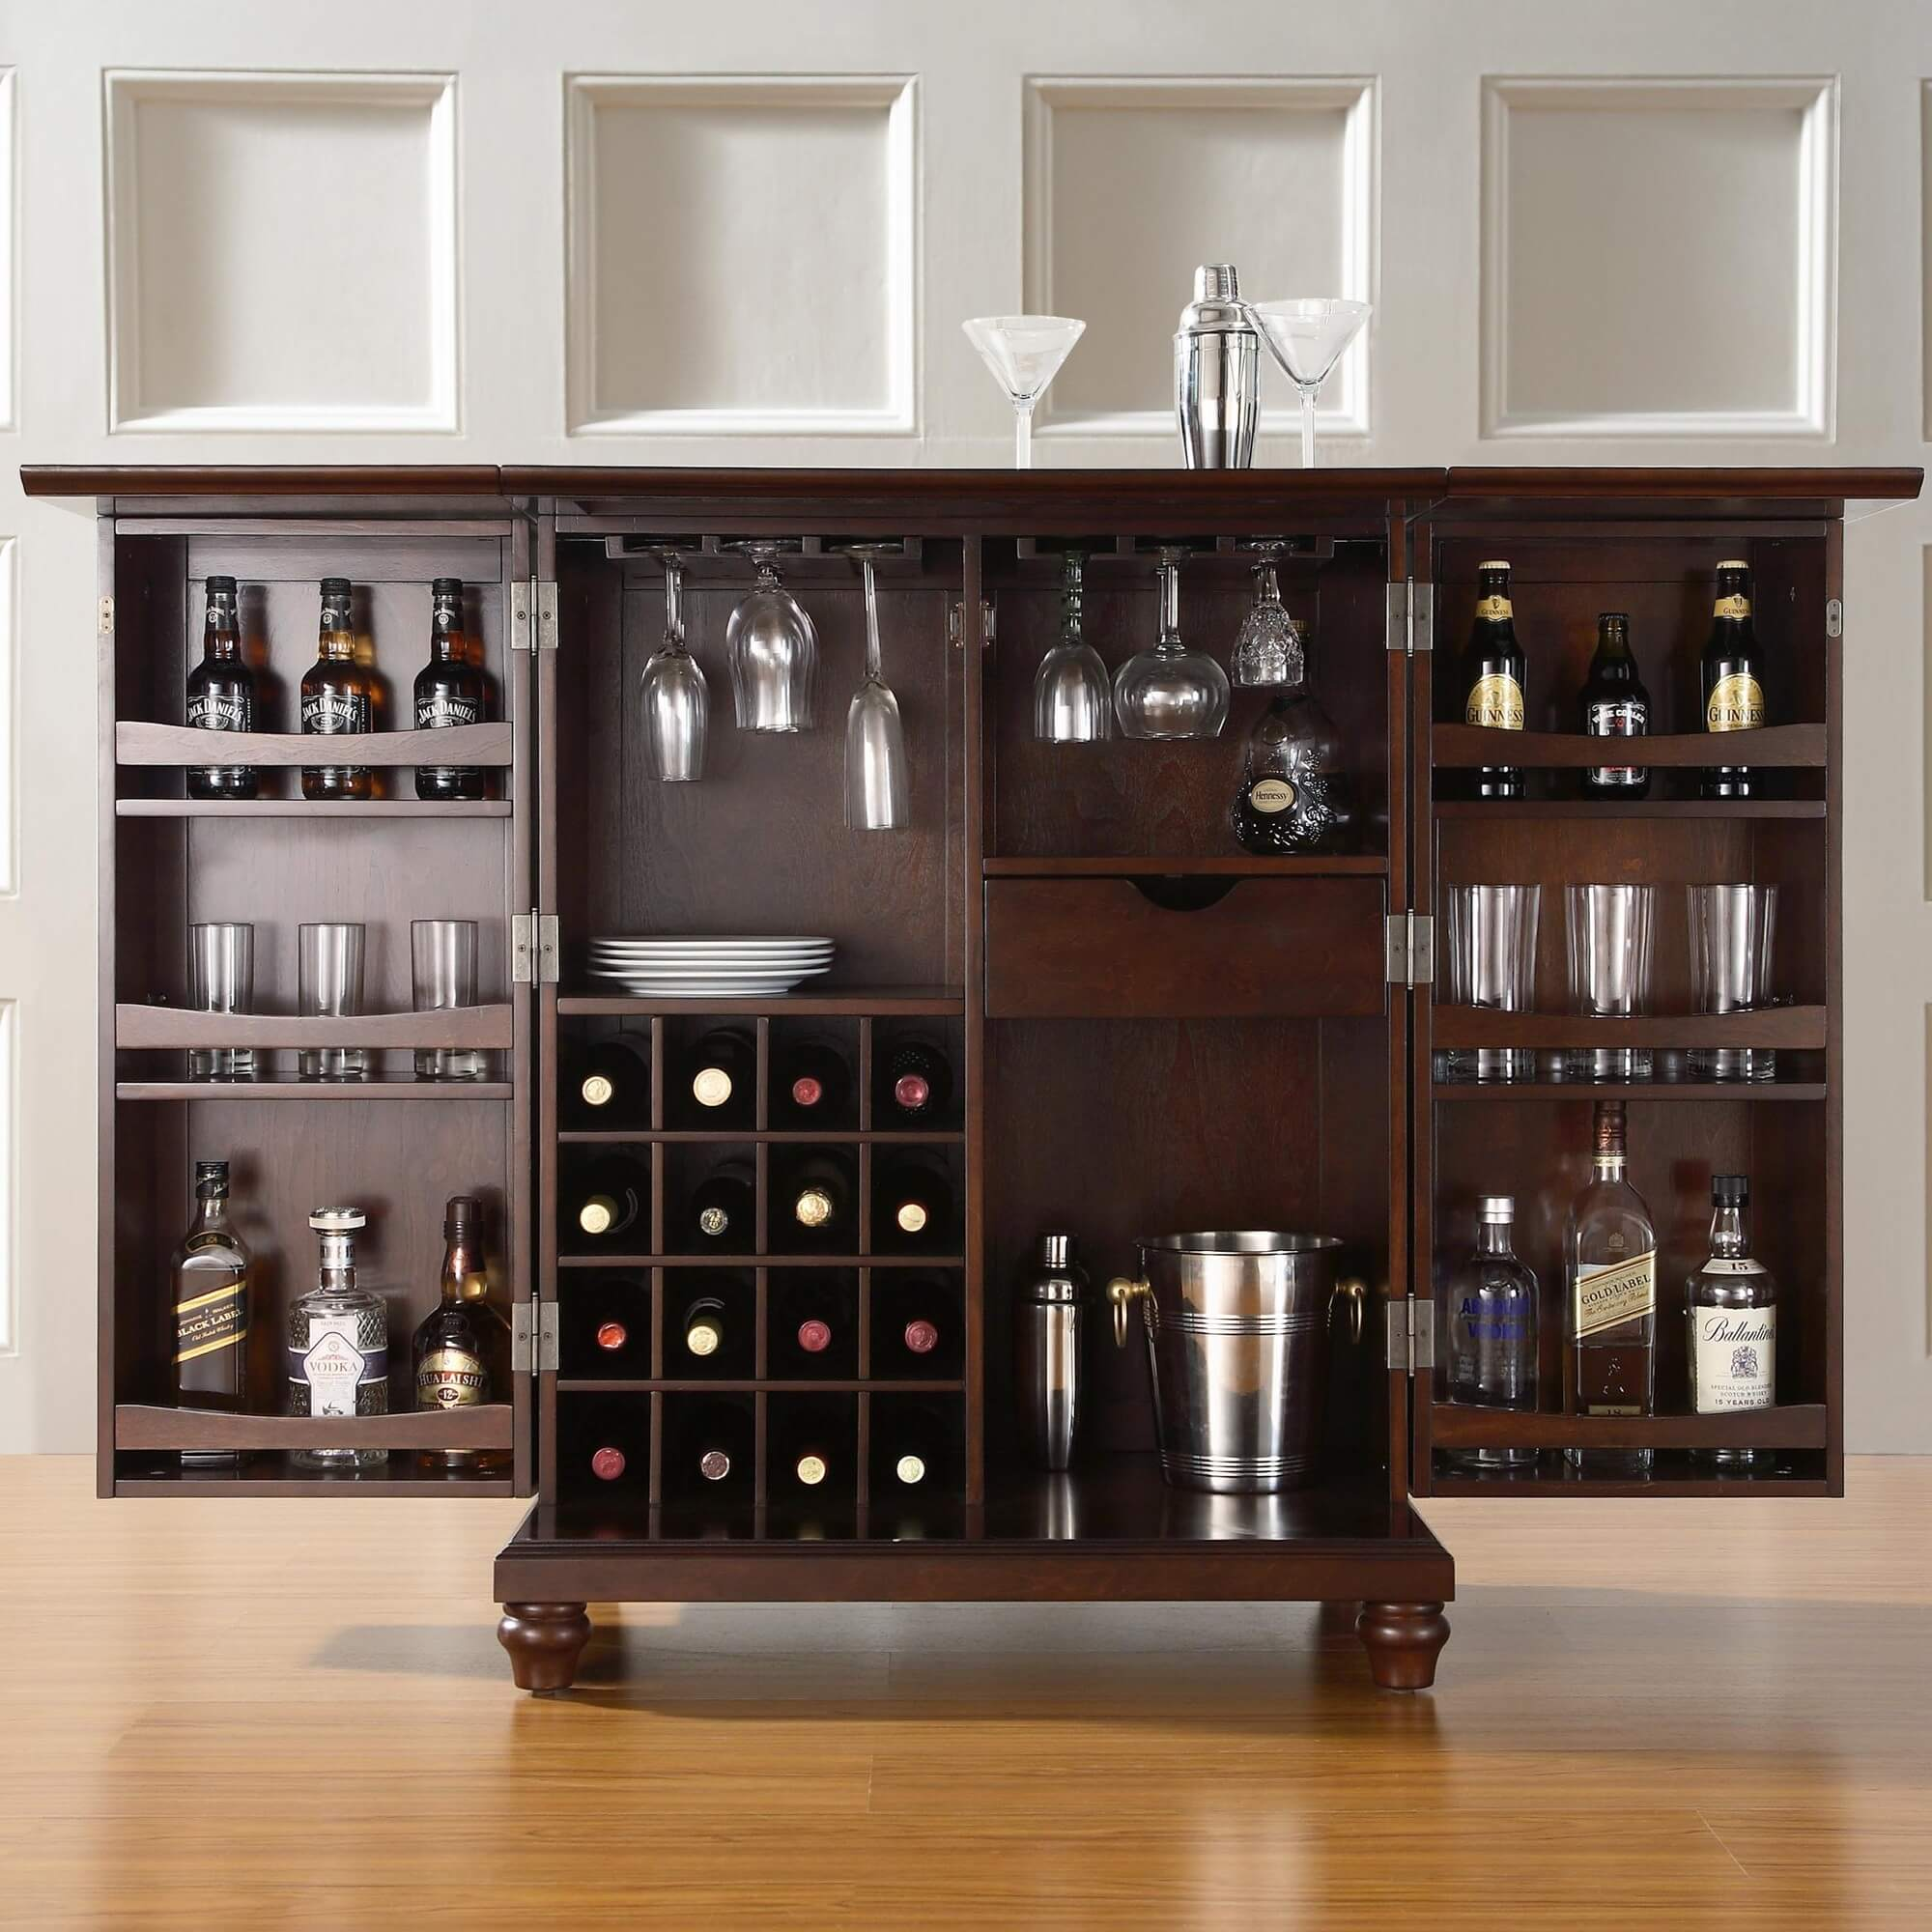 https://s3.amazonaws.com/homestratosphere/wp-content/uploads/2014/09/3bway-home-bar.jpg